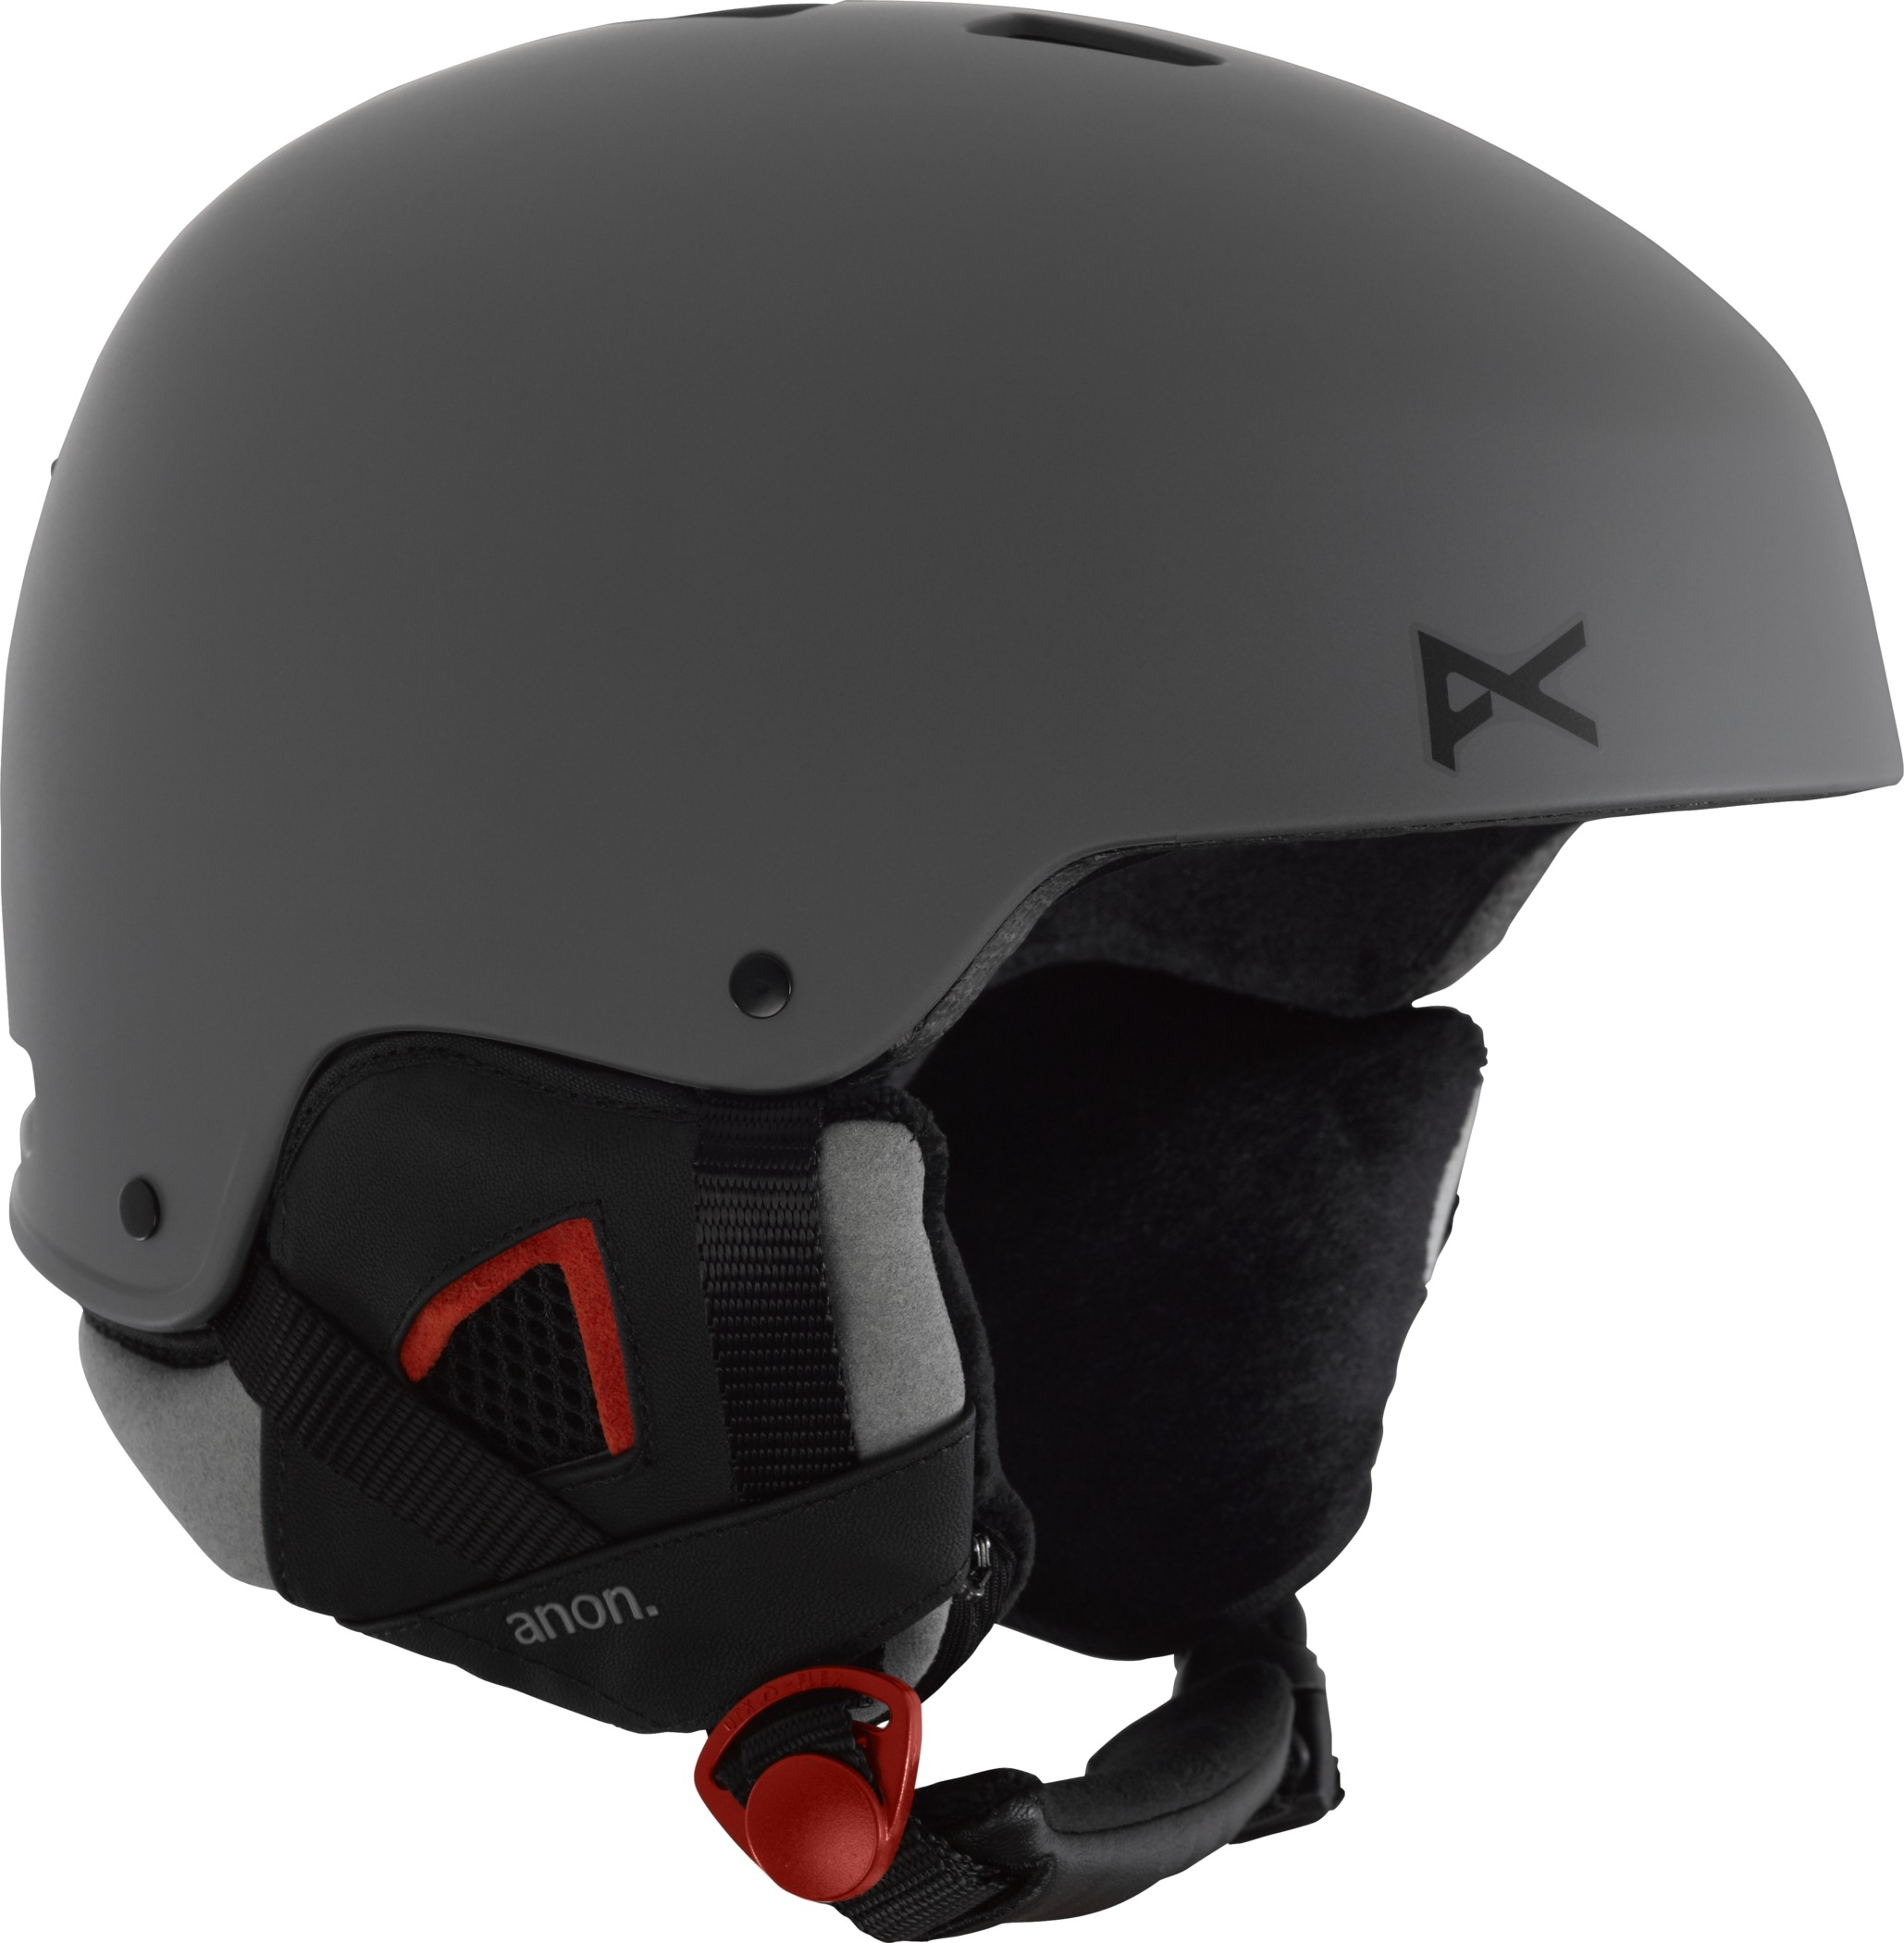 Kask Snowboardowy Anon Striker (Grey)